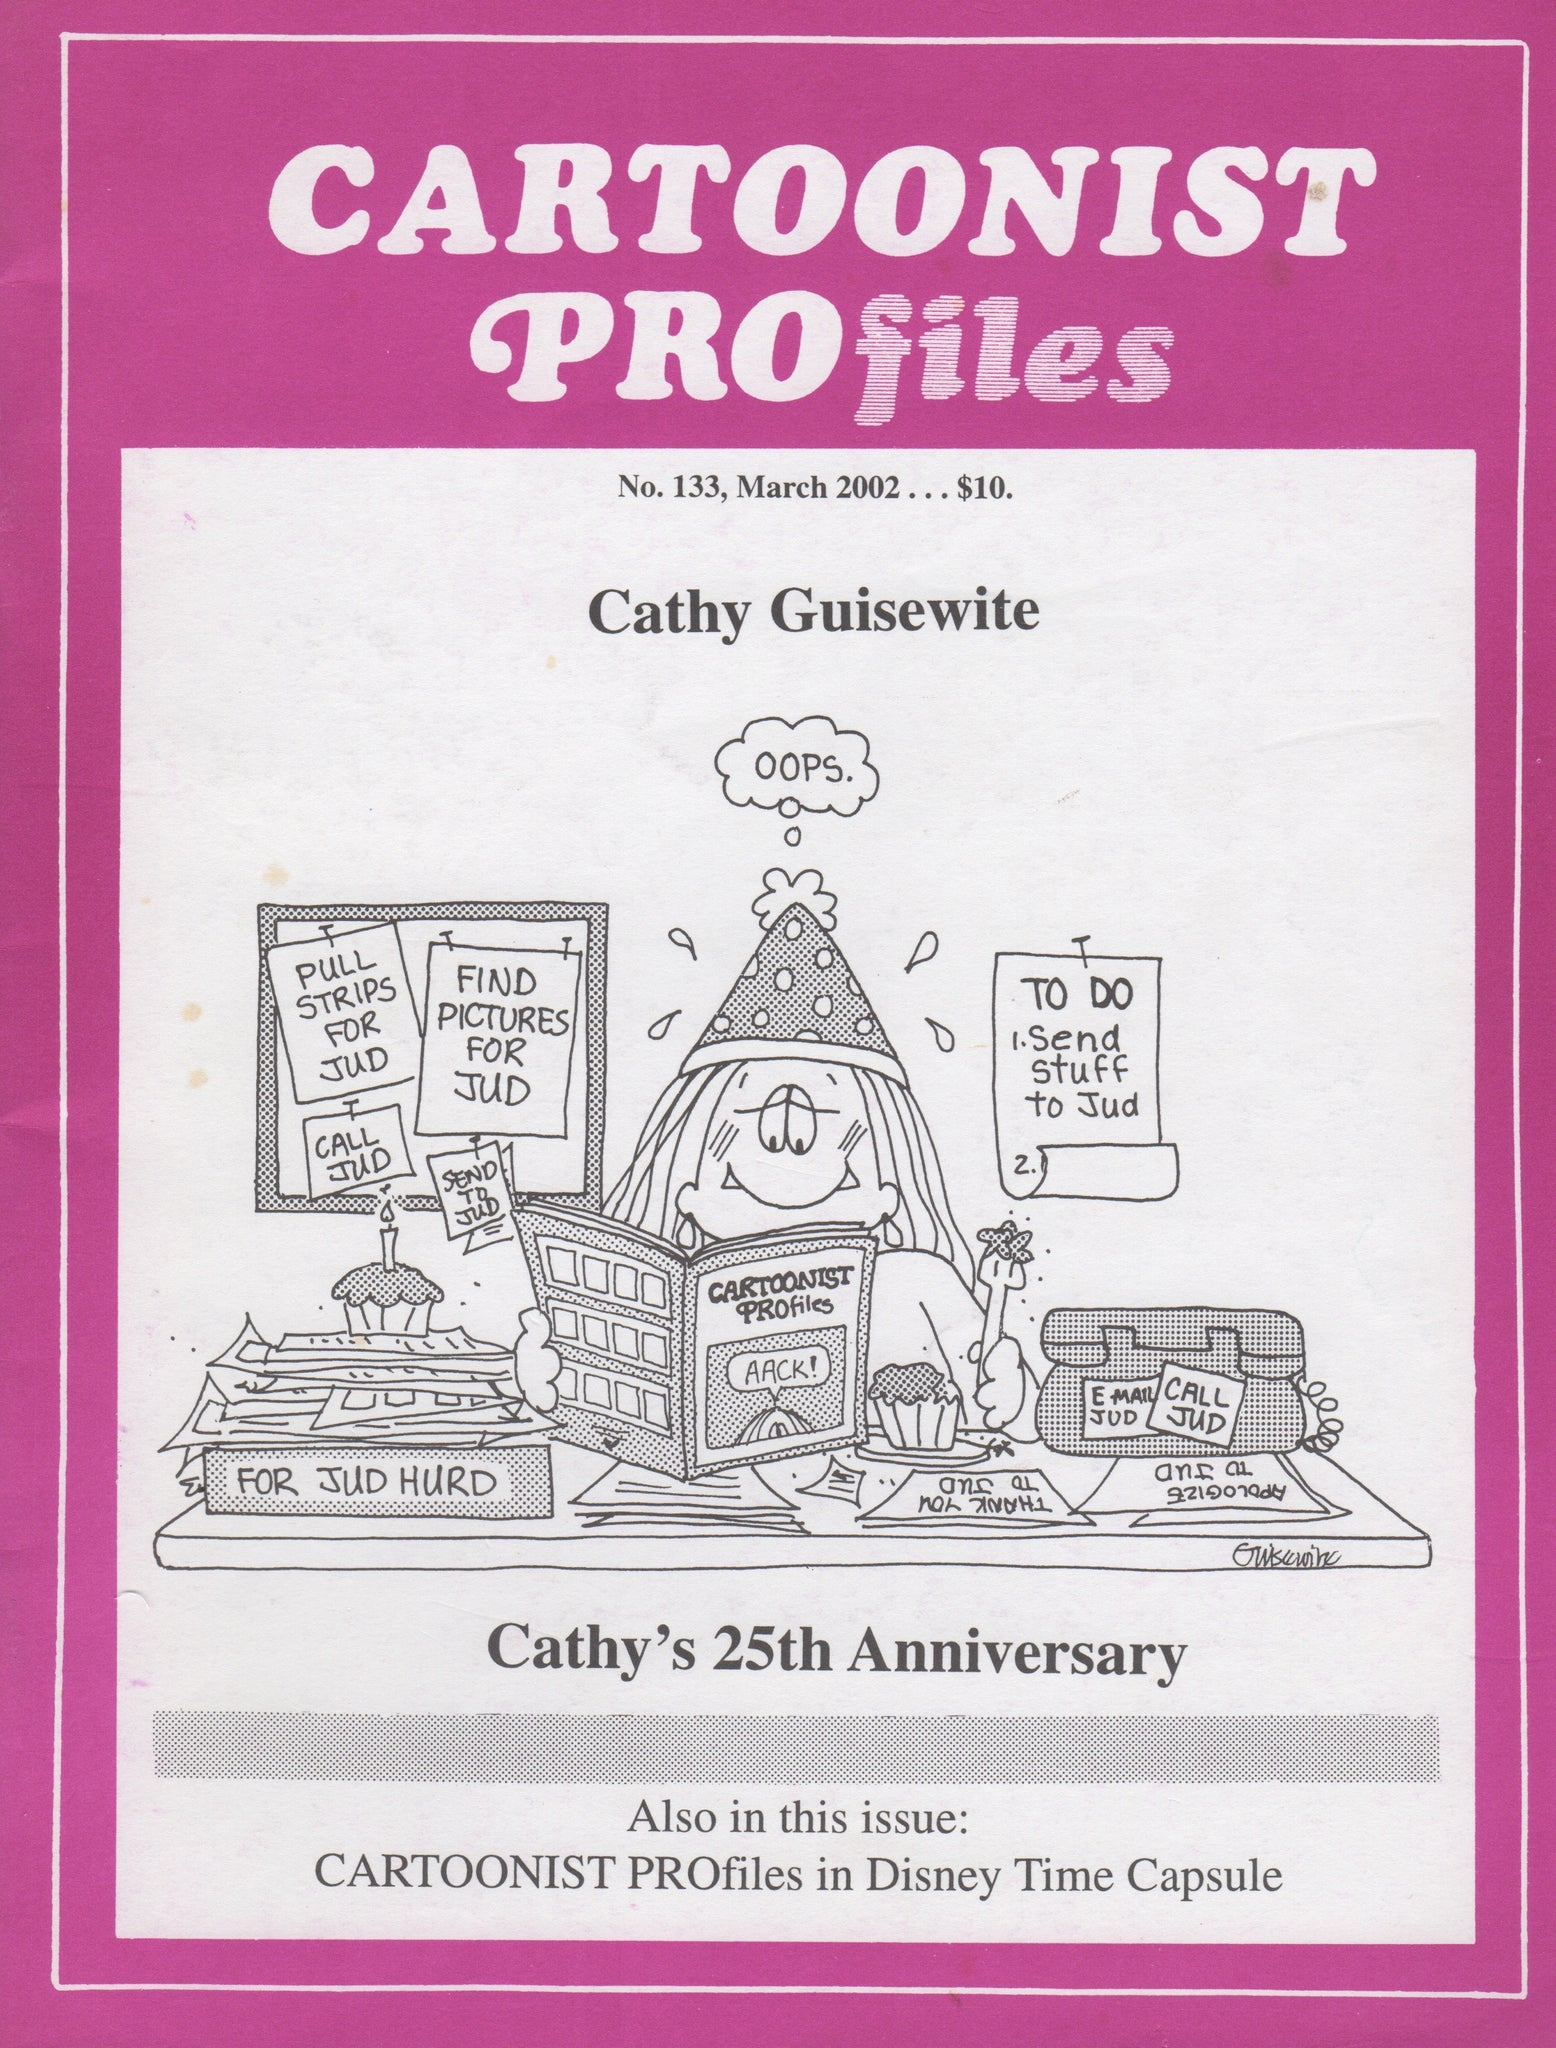 Cartoonist PROfiles Issue #133, March 2002